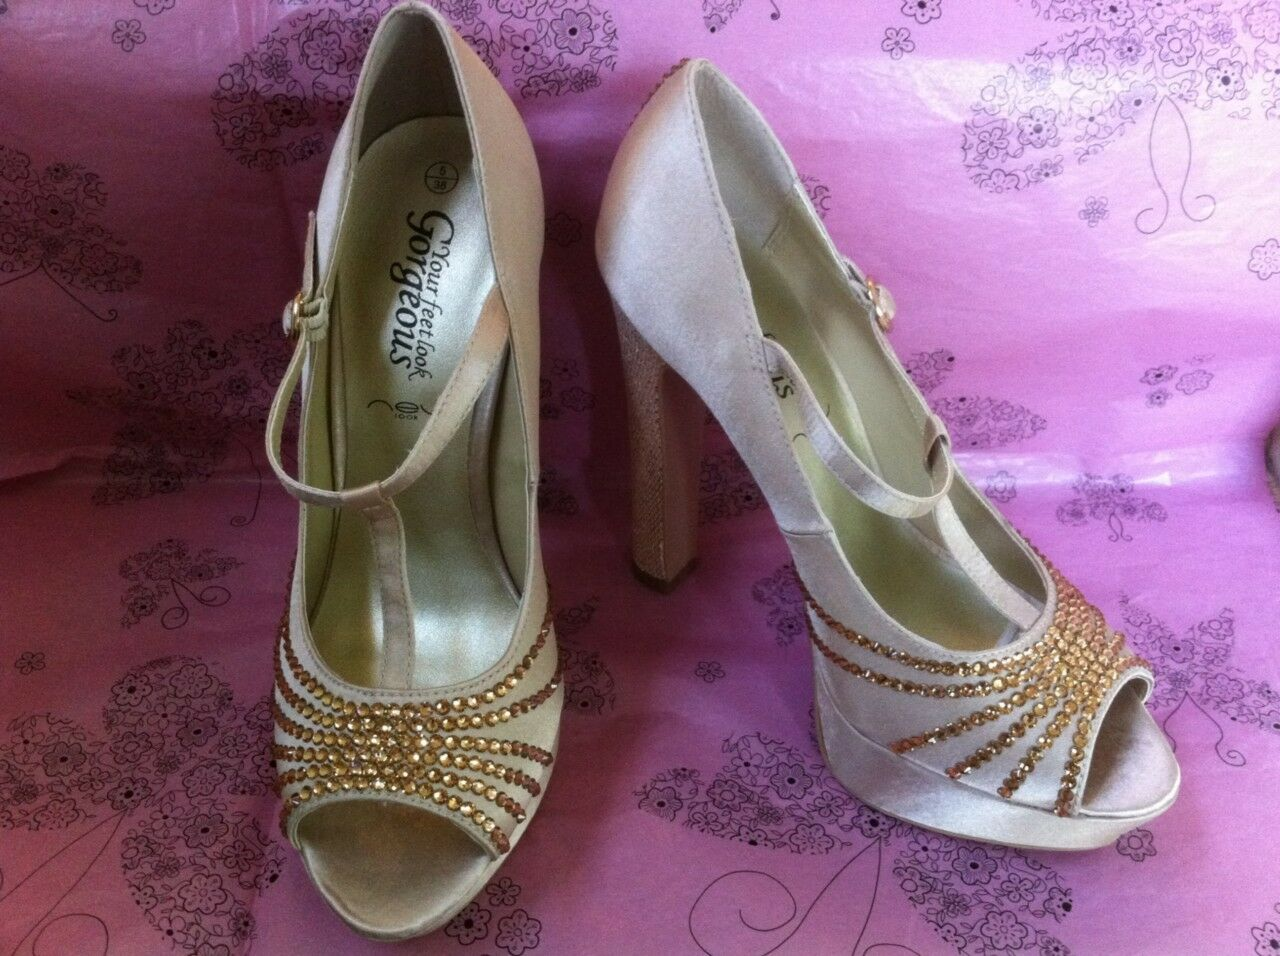 Ivory Satin, Gold Crystal,Glitter Heel Bridal schuhe Made With SWAROVSKI ELEMENTS